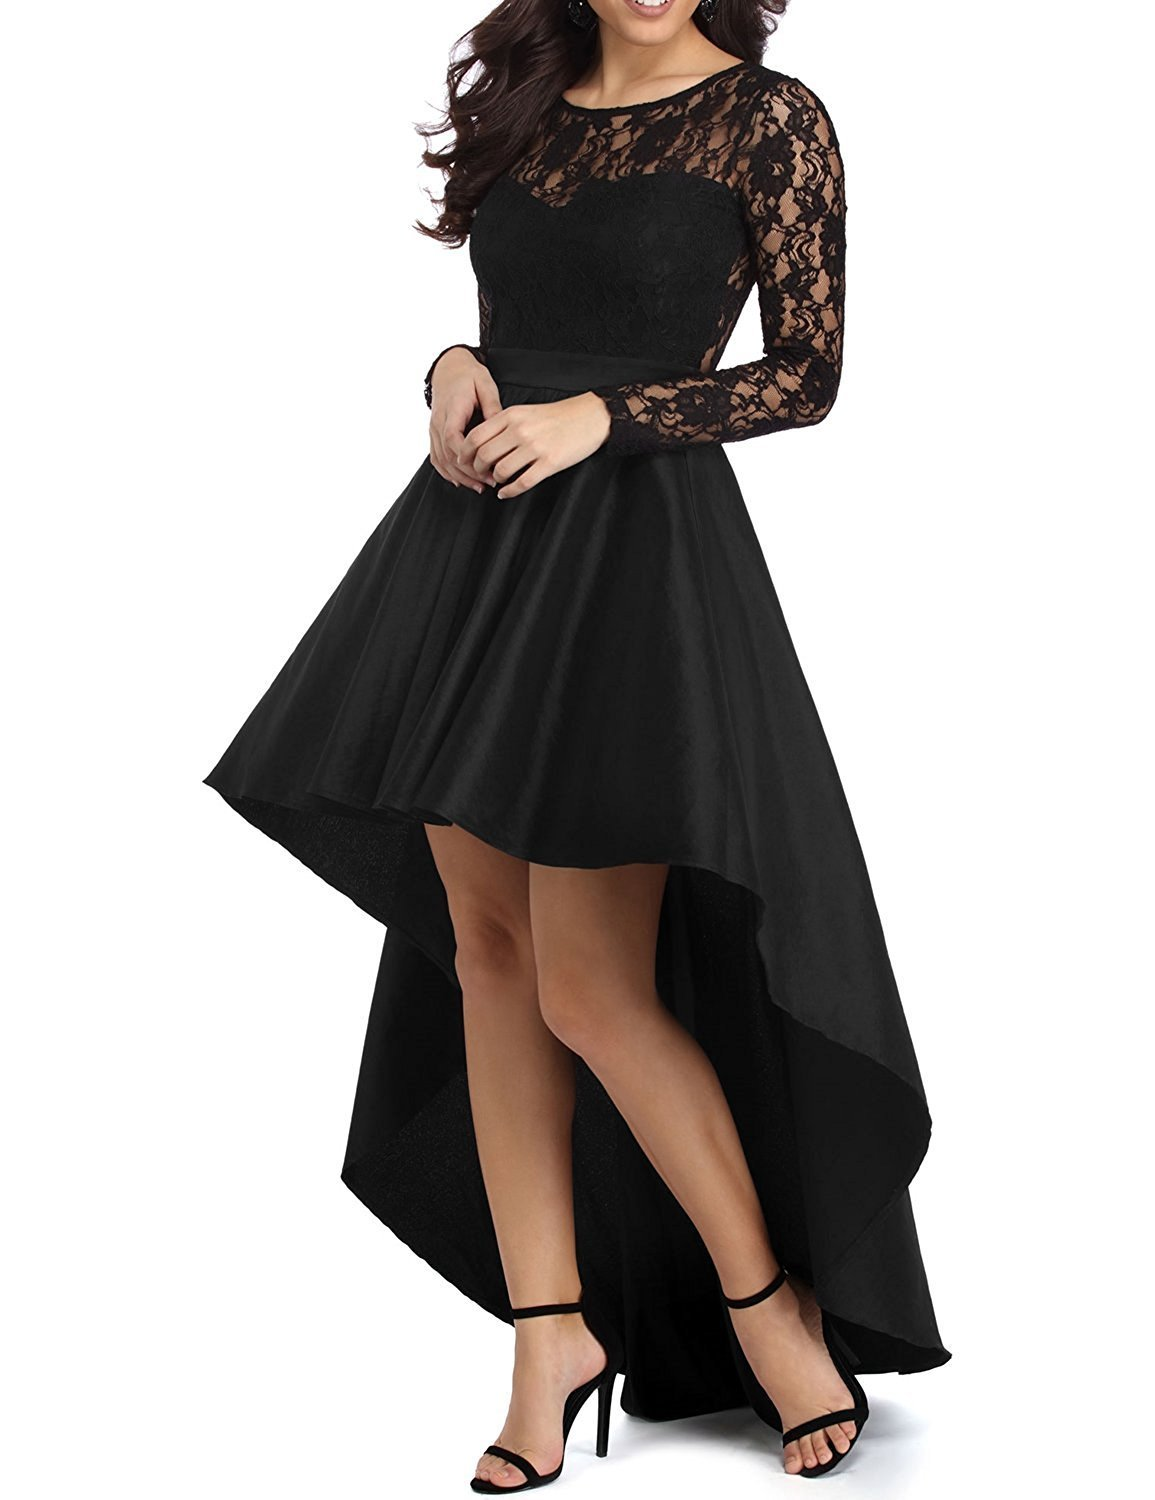 Women's High Low Long Sleeve Black Prom Dress Lace Cocktail Dresses Party Gowns